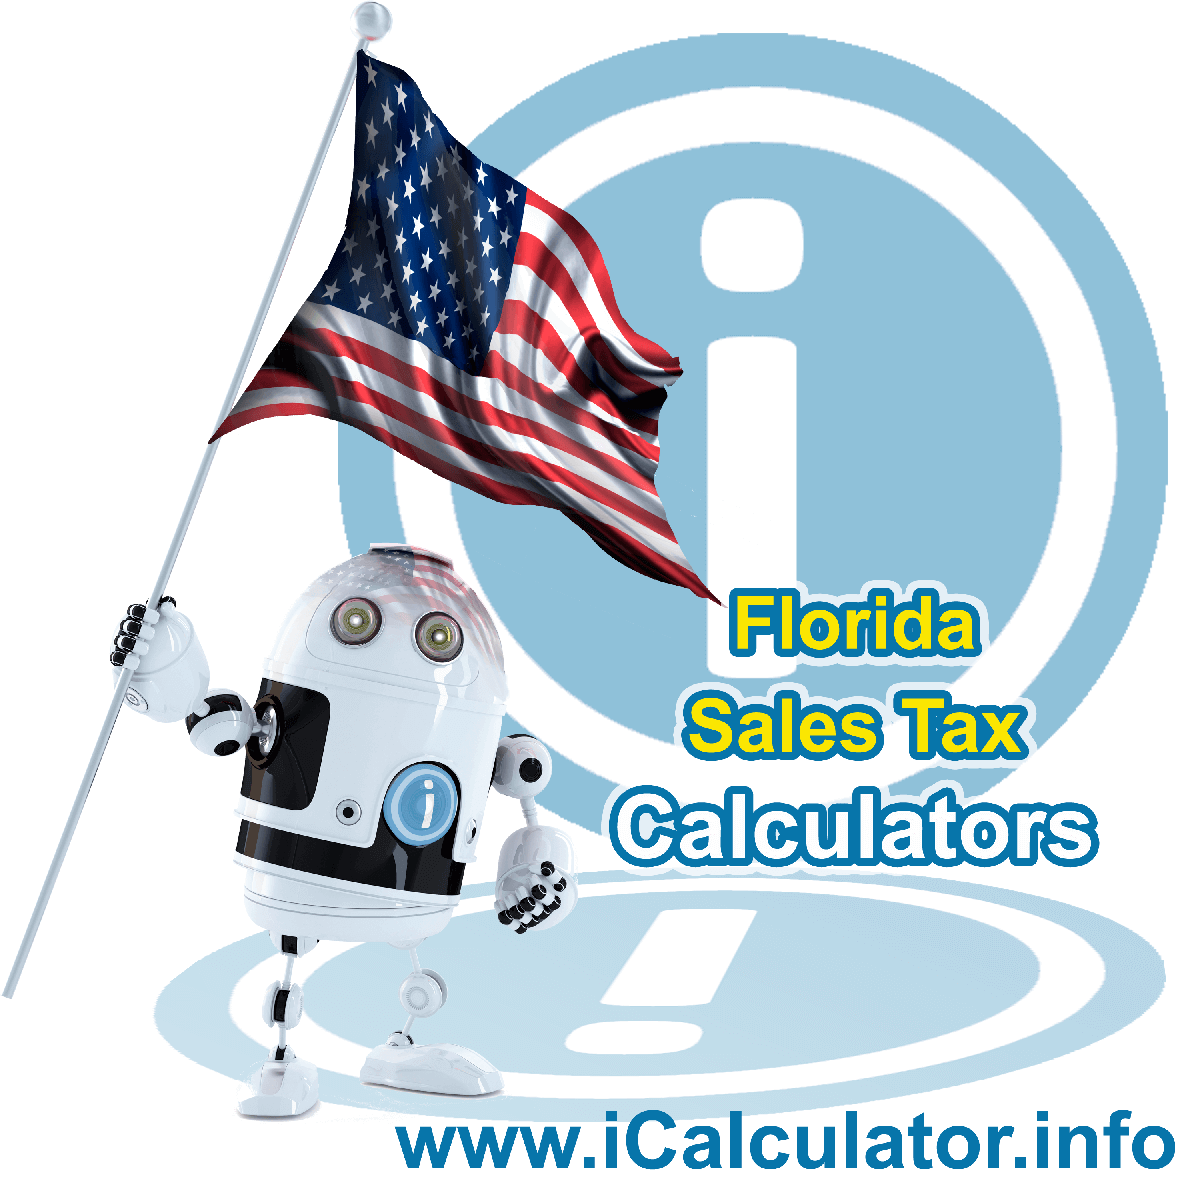 Florida Sales Tax Comparison Calculator: This image illustrates a calculator robot comparing sales tax in Florida manually using the Florida Sales Tax Formula. You can use this information to compare Sales Tax manually or use the Florida Sales Tax Comparison Calculator to calculate and compare Florida sales tax online.